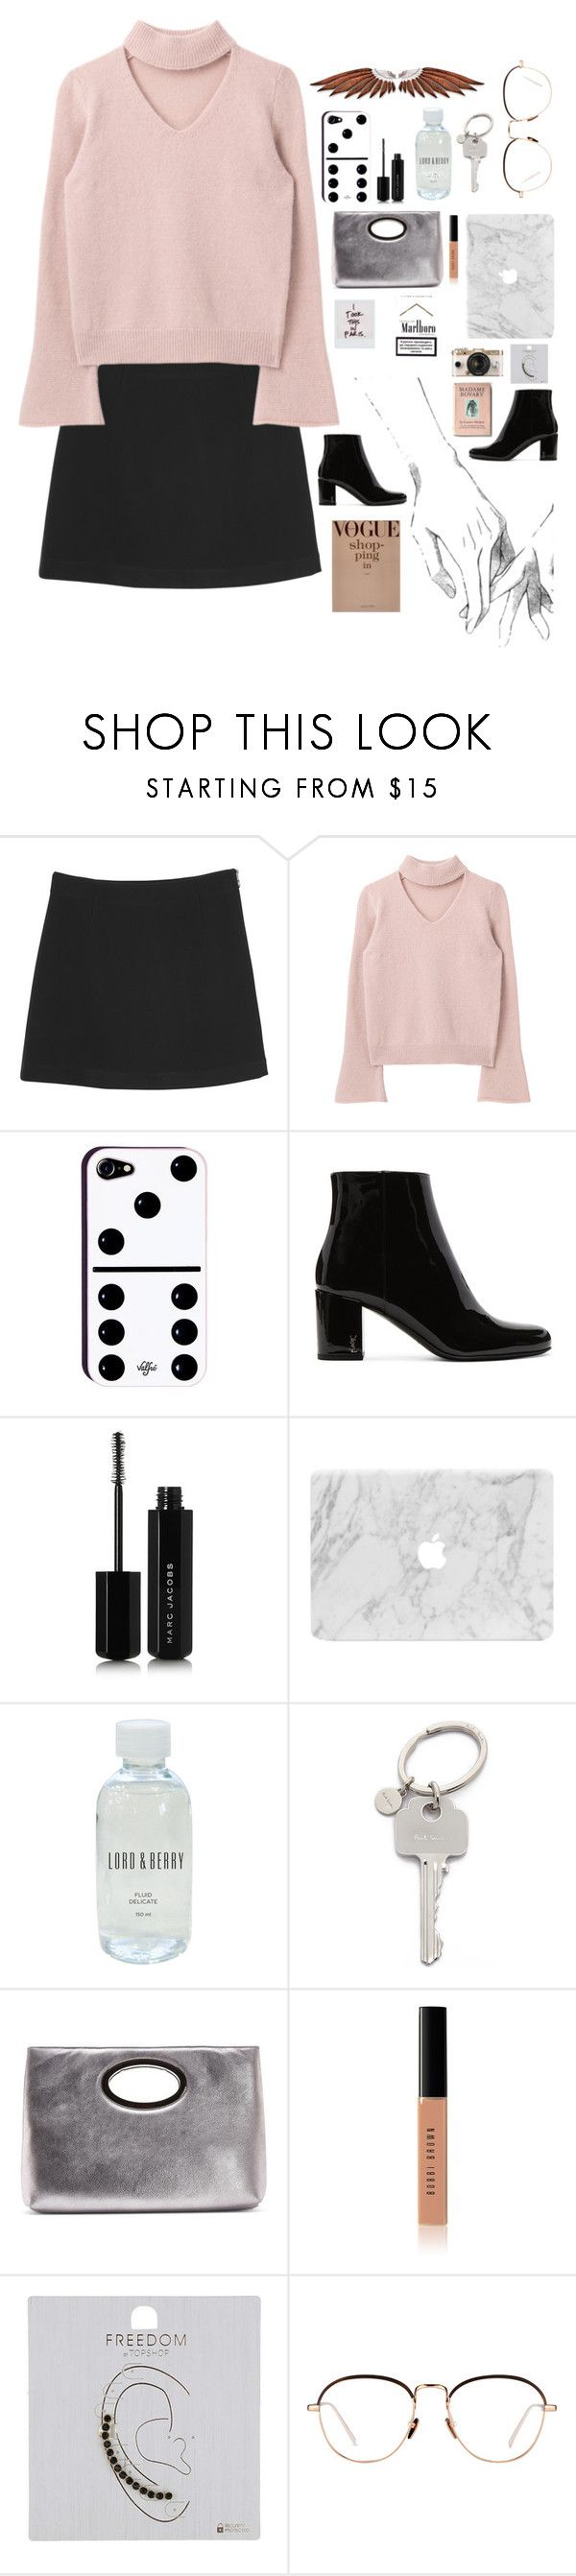 """""""Fashion Prada"""" by lucky-luci ❤ liked on Polyvore featuring Monki, Yves Saint Laurent, Marc Jacobs, Lord & Berry, Paul Smith, Donald J Pliner, Bobbi Brown Cosmetics, Topshop, Urban Outfitters and Linda Farrow"""